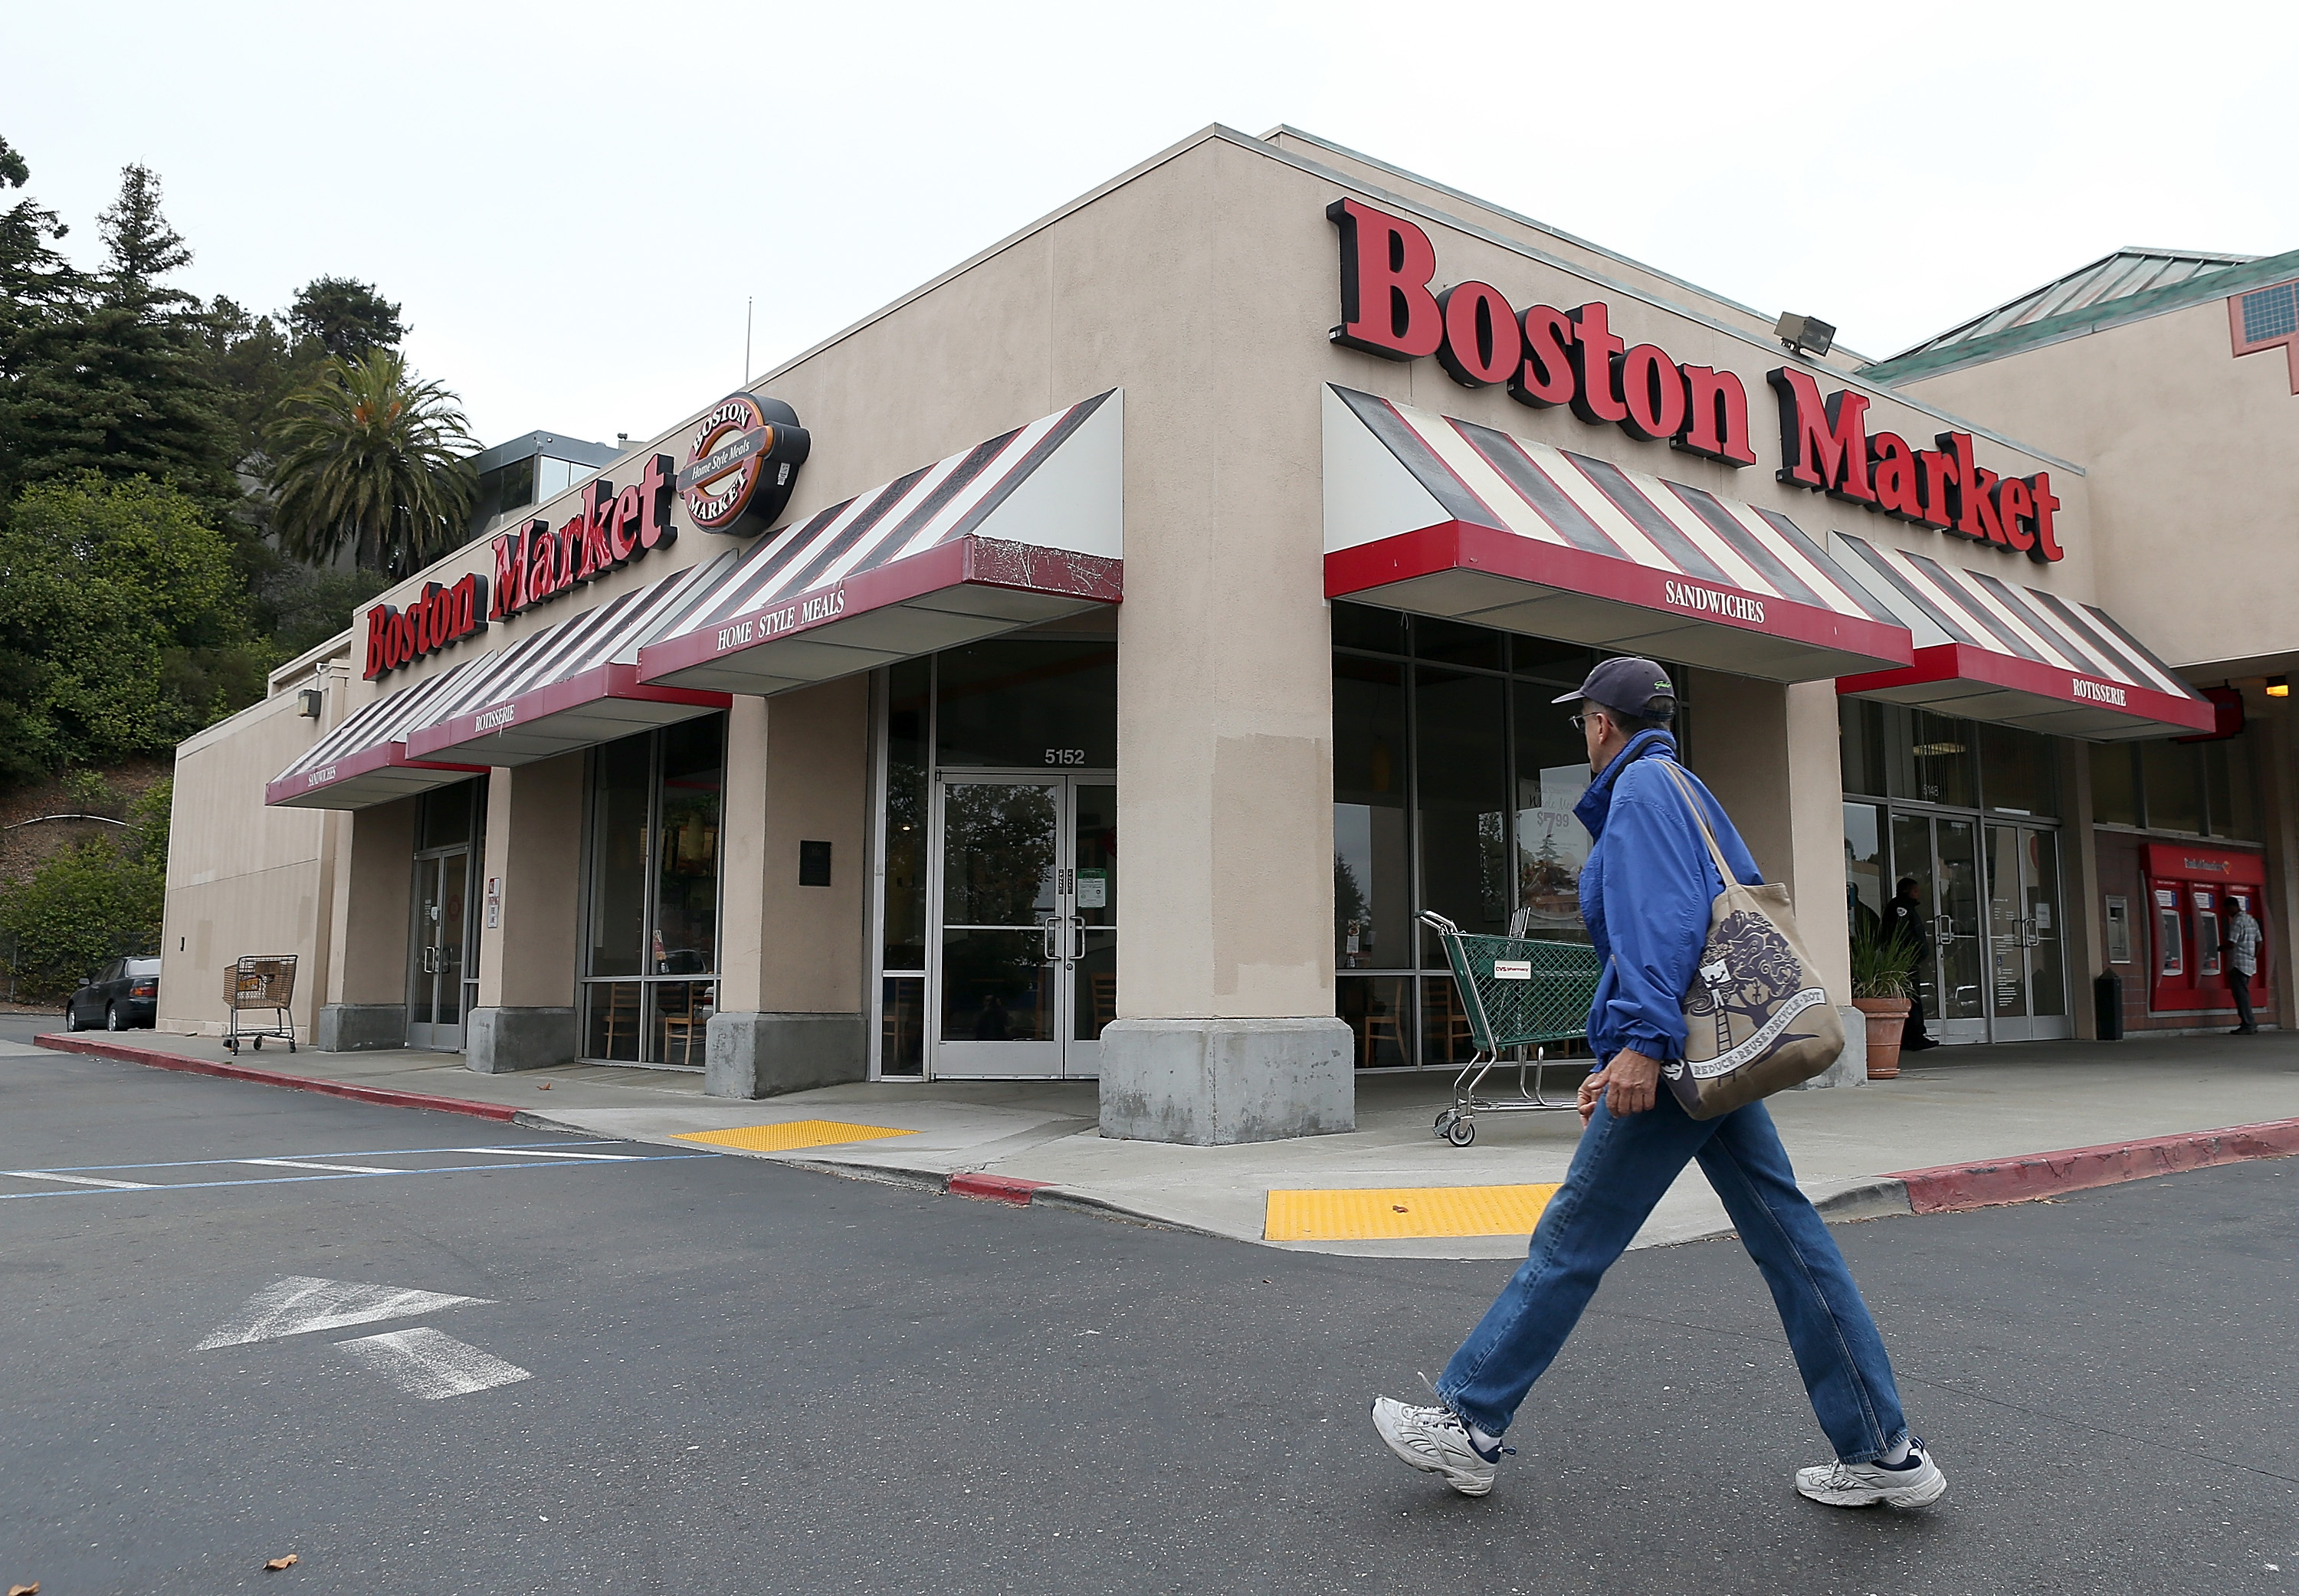 A man walks by a Boston Market restaurant on August 21, 2012 in Oakland, Calif.